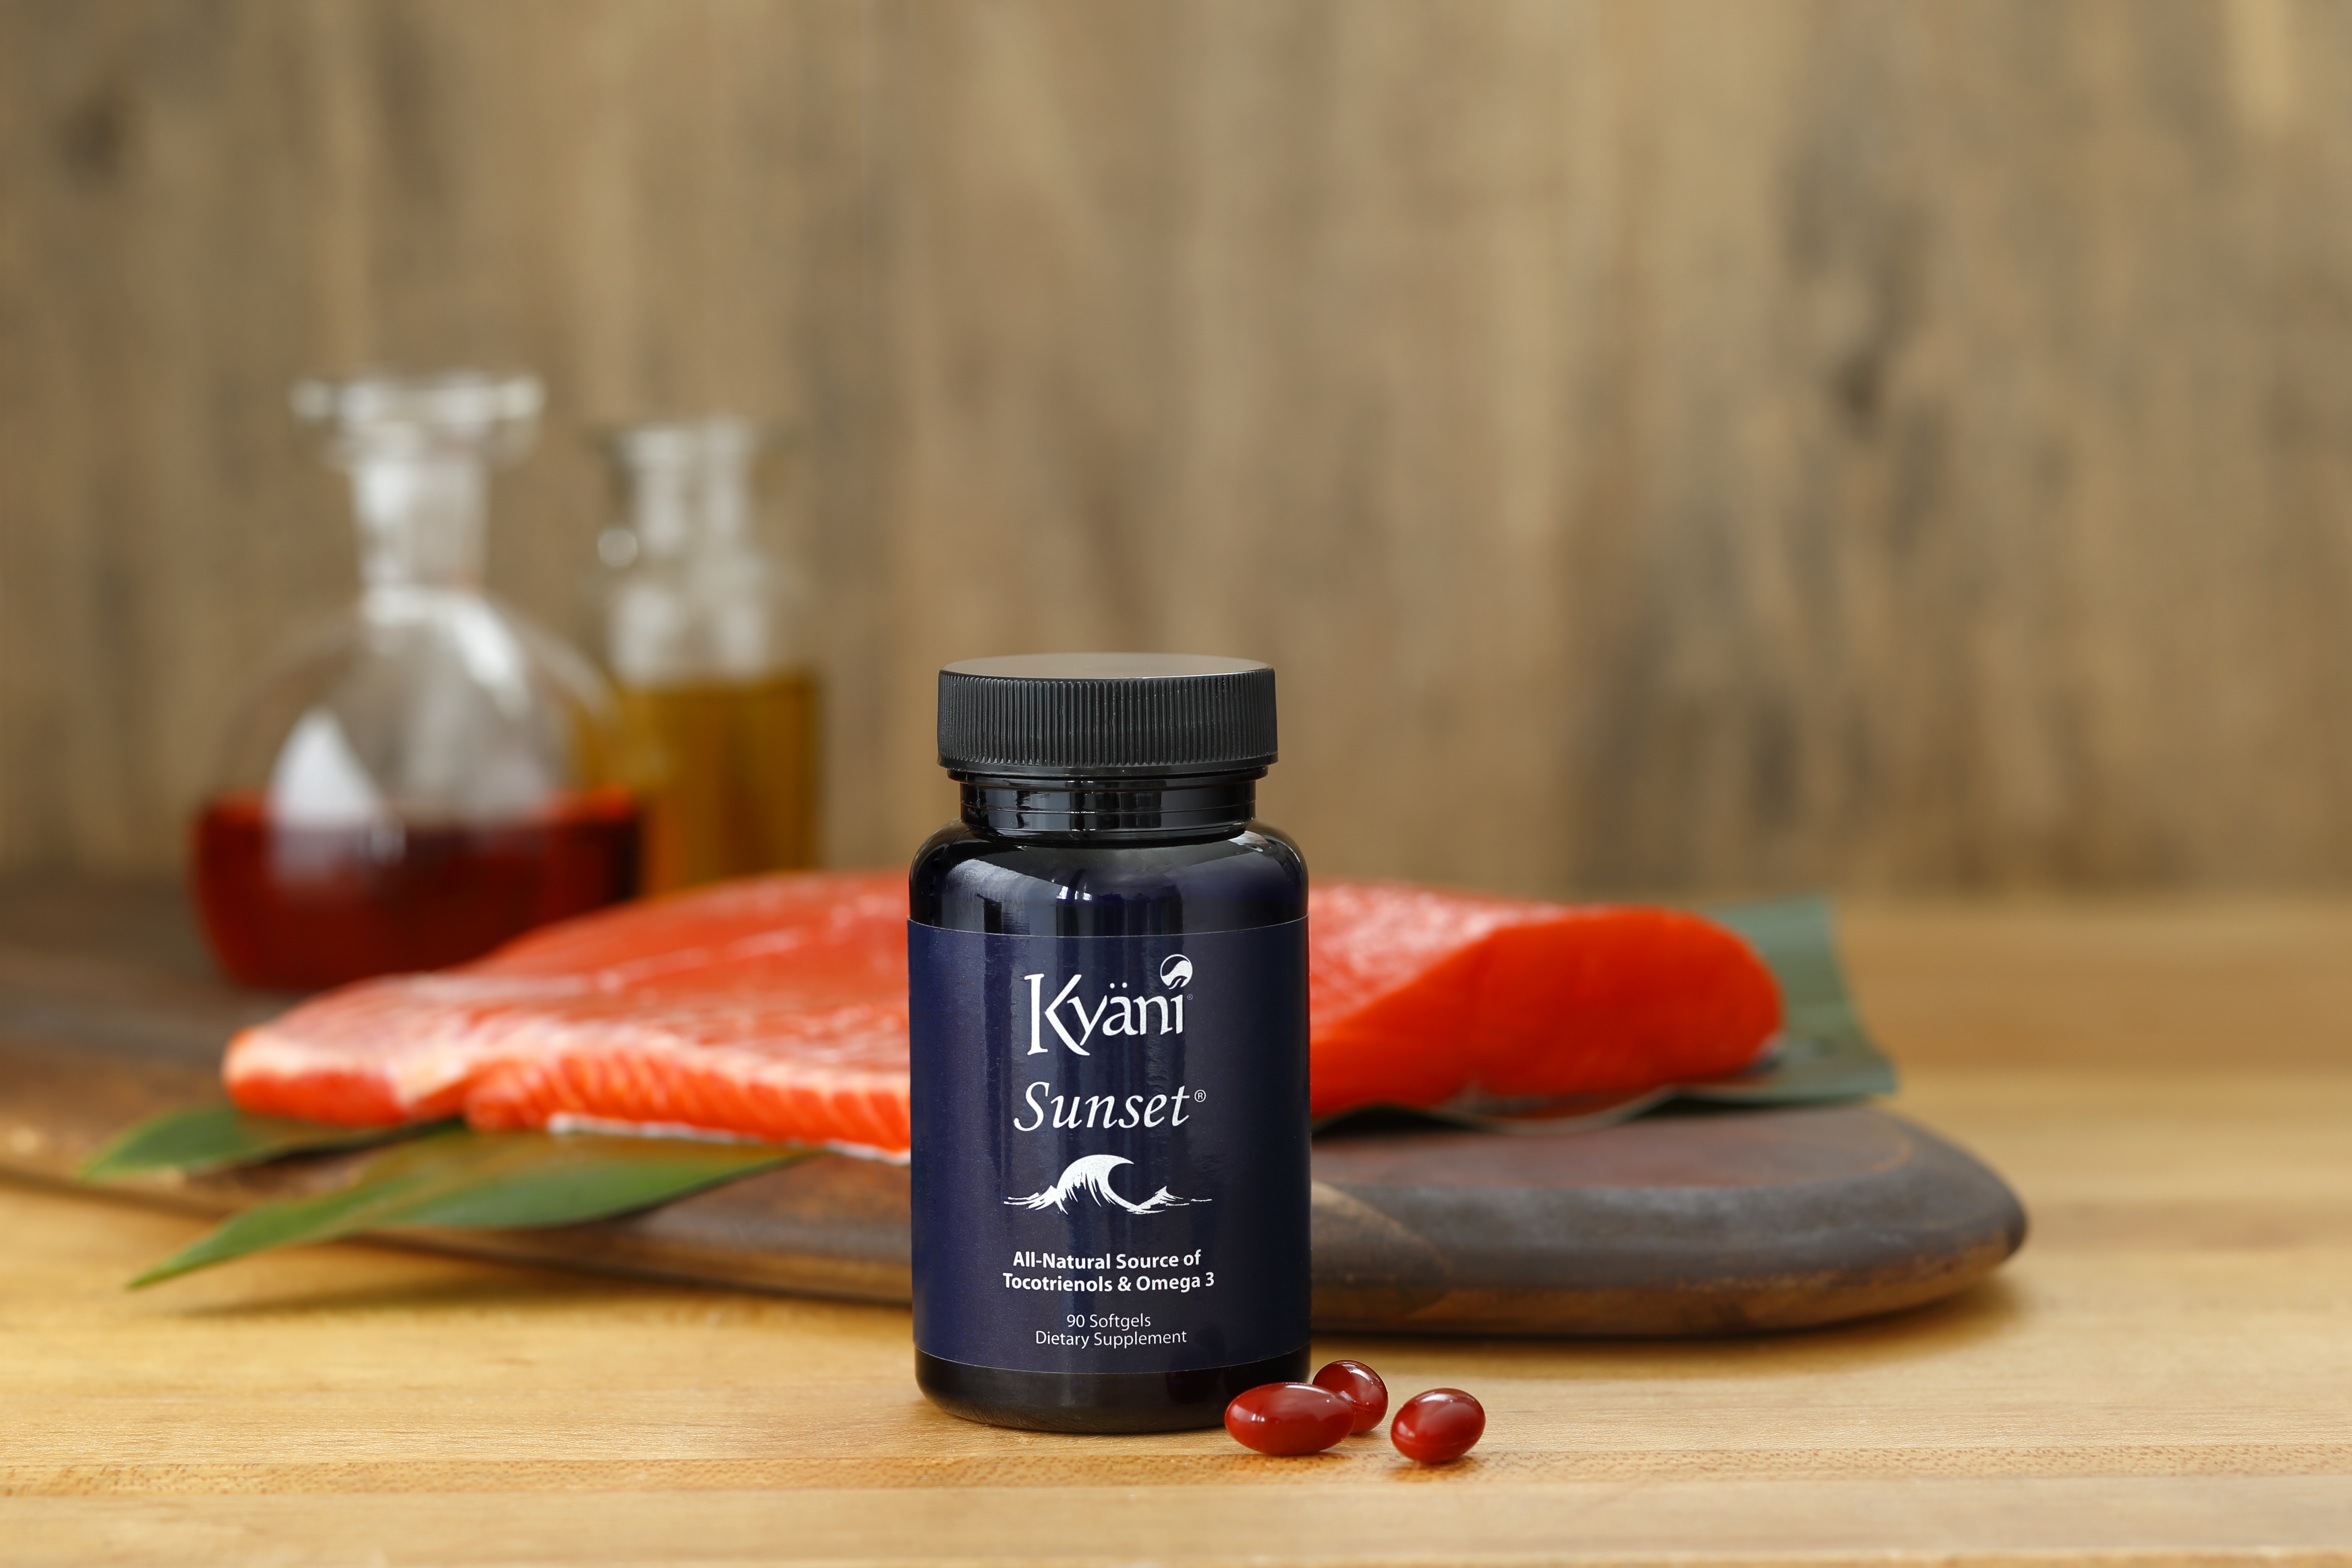 Kyani Sunset – An Organic Supplement for Today's World